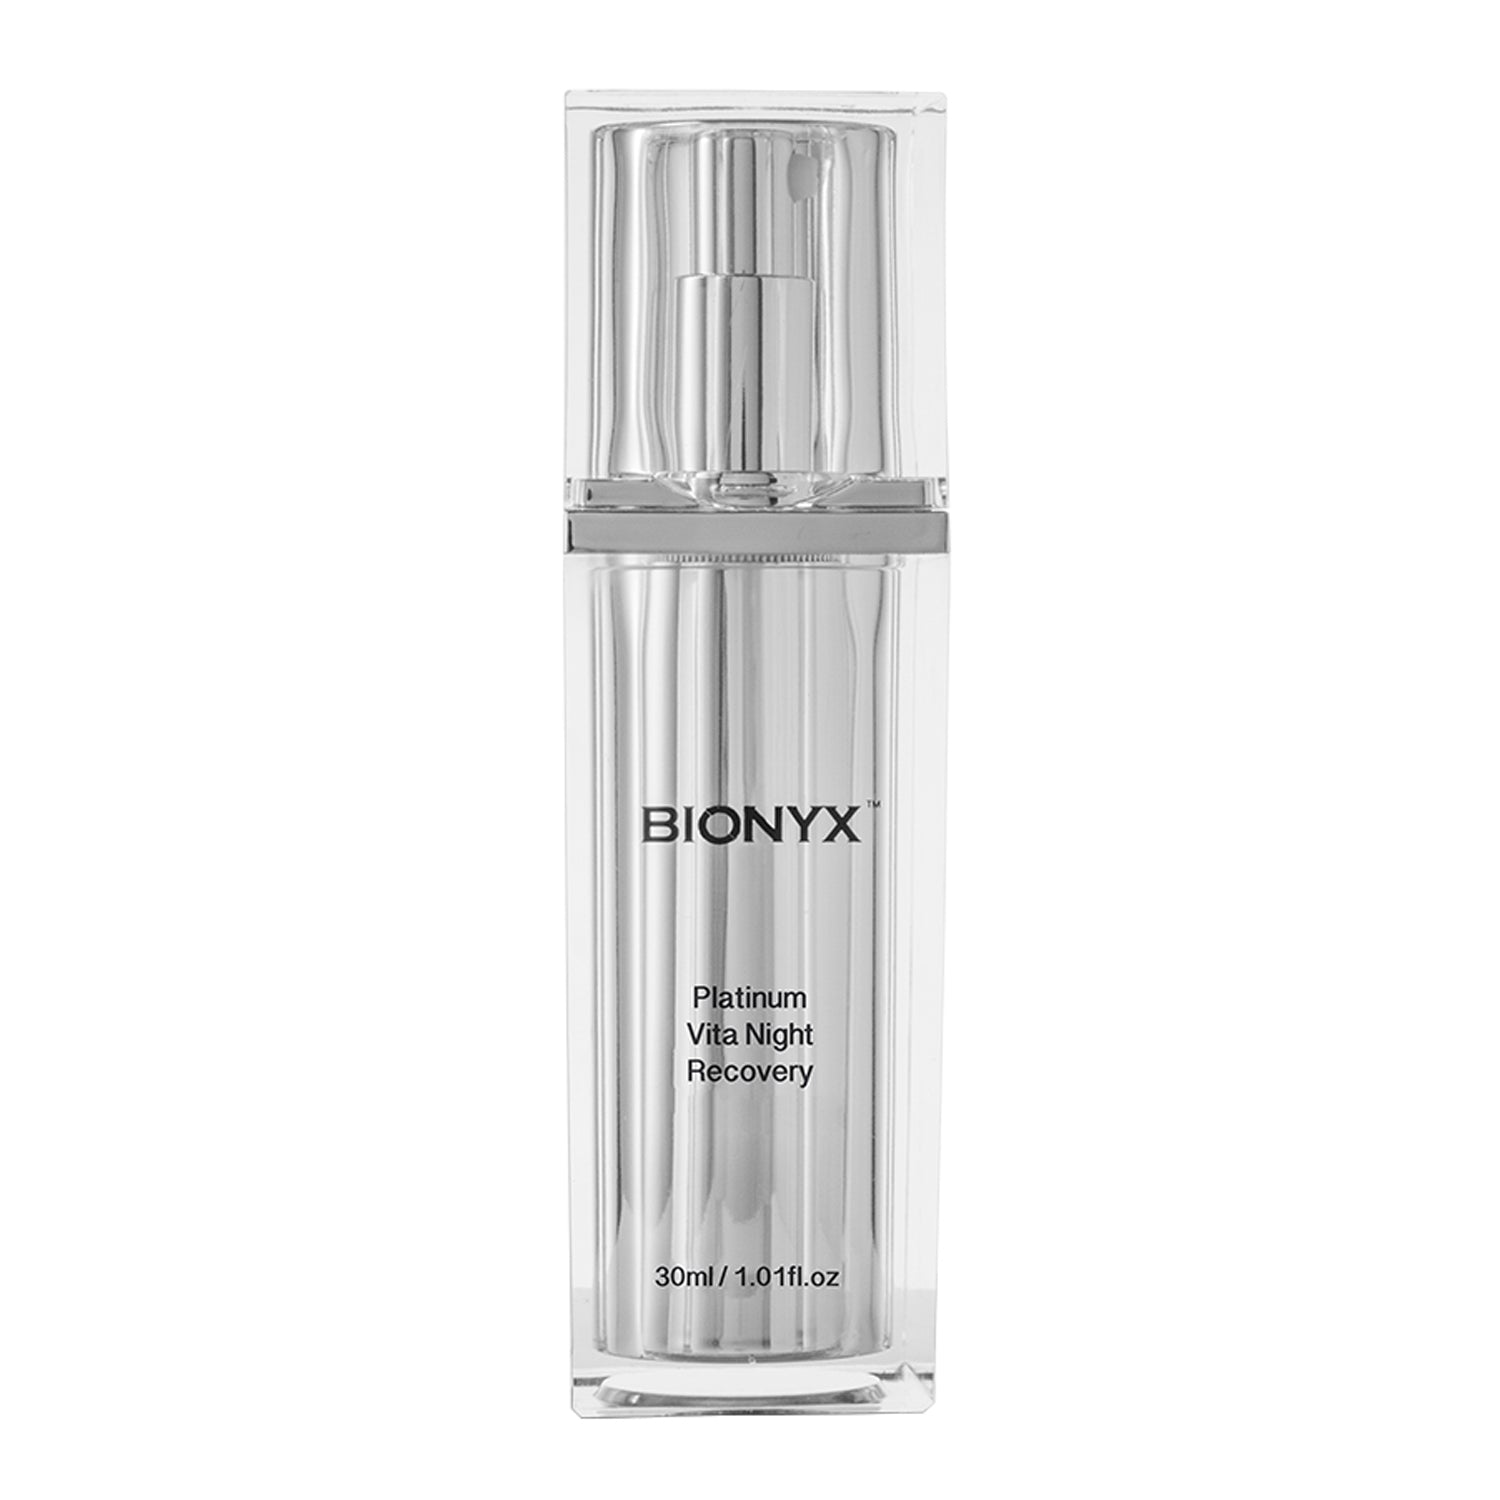 Bionyx Platinum Vita Night Recovery